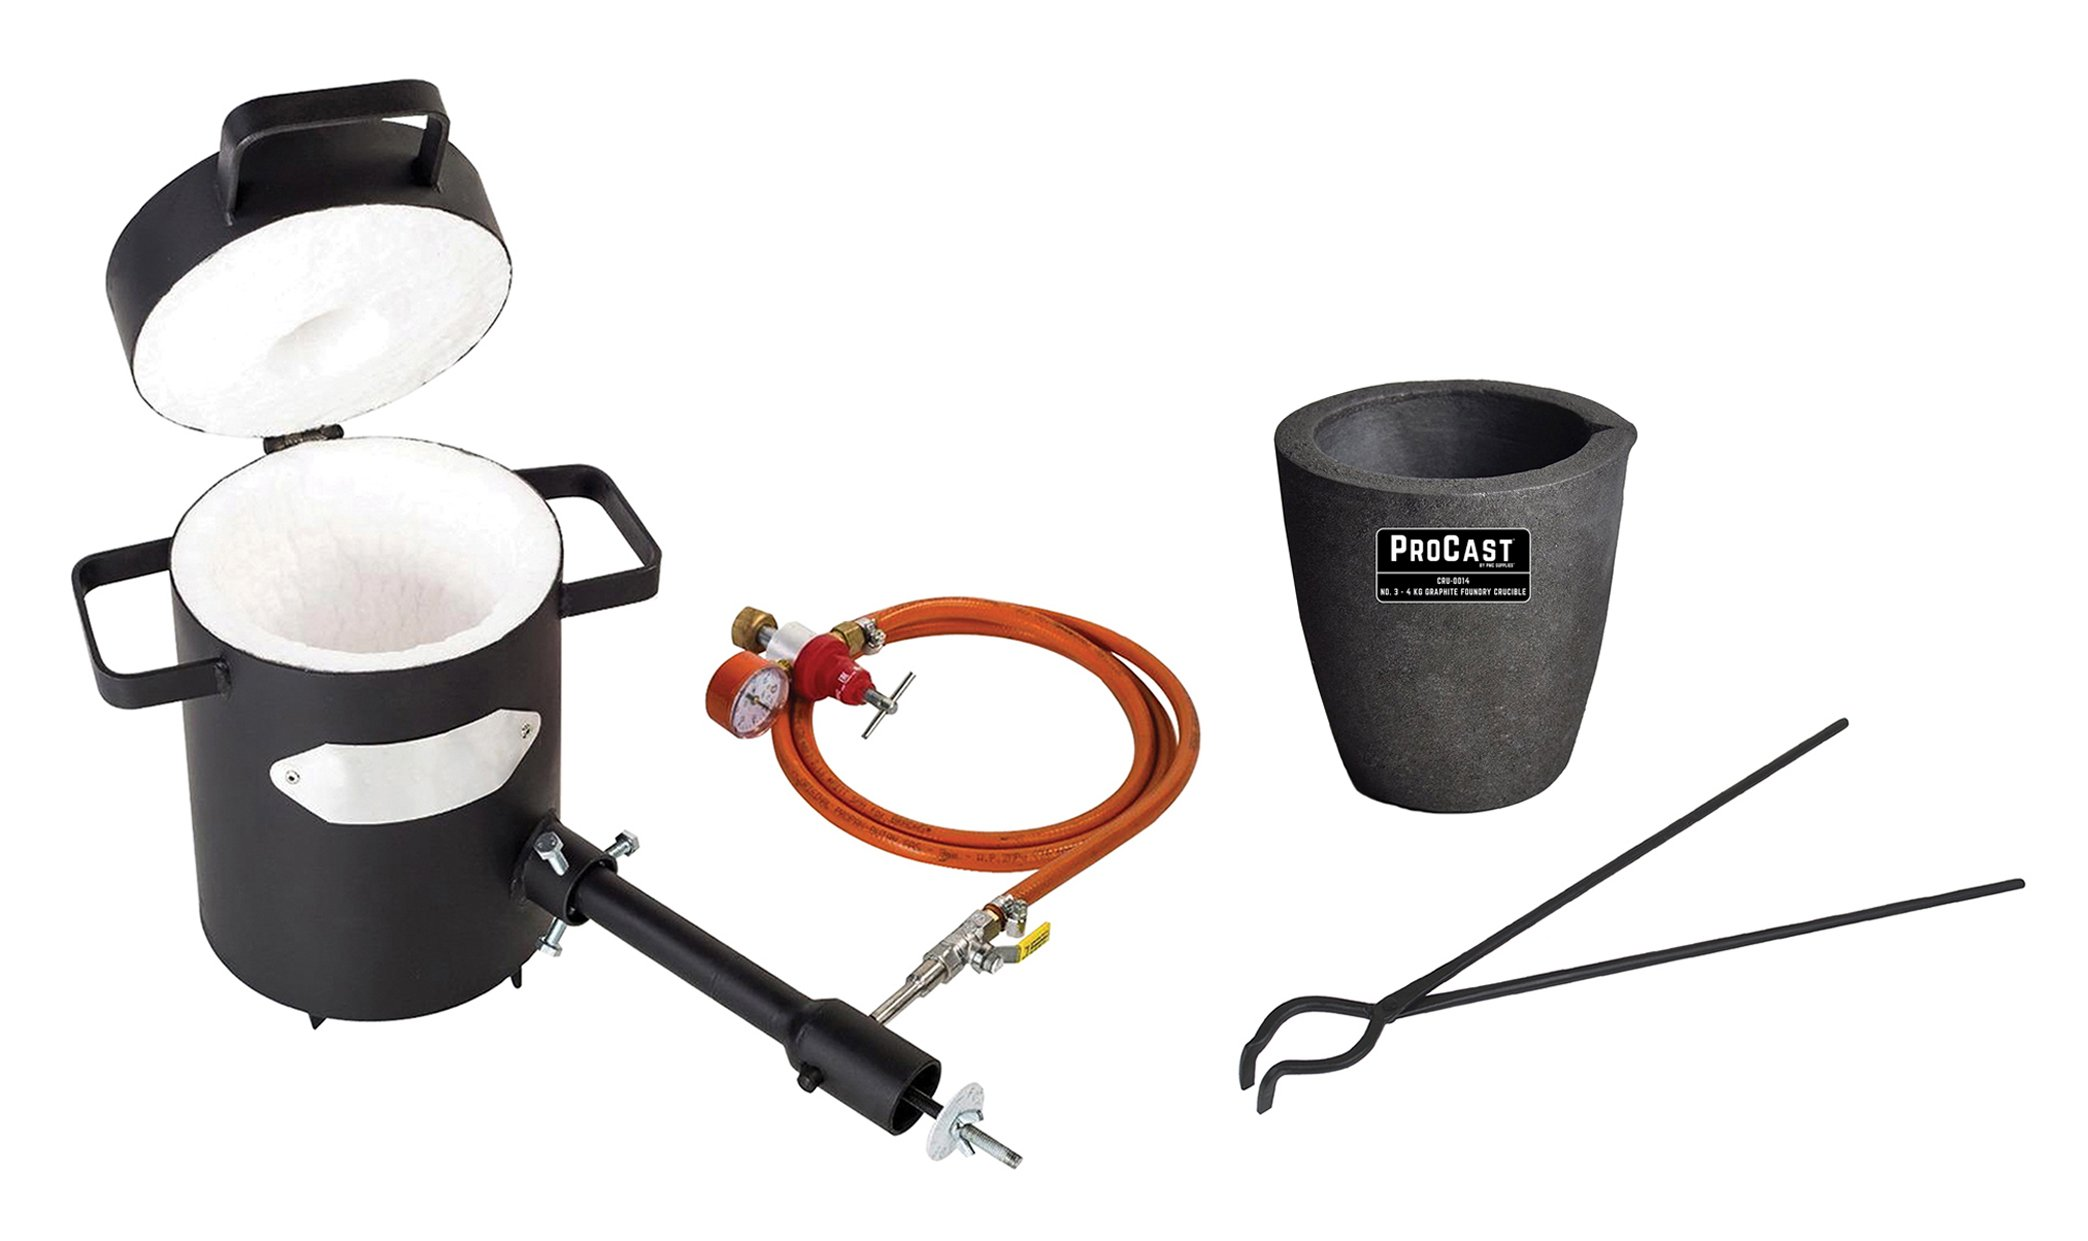 5 Kg Propane Melting Furnace Kit w/No 5 Kg Clay Graphite Foundry Crucible w/and 19'' Hinge-Style Foundry Crucible Tongs Gold Silver Metal Refining Casting Tool by PMC Supplies LLC